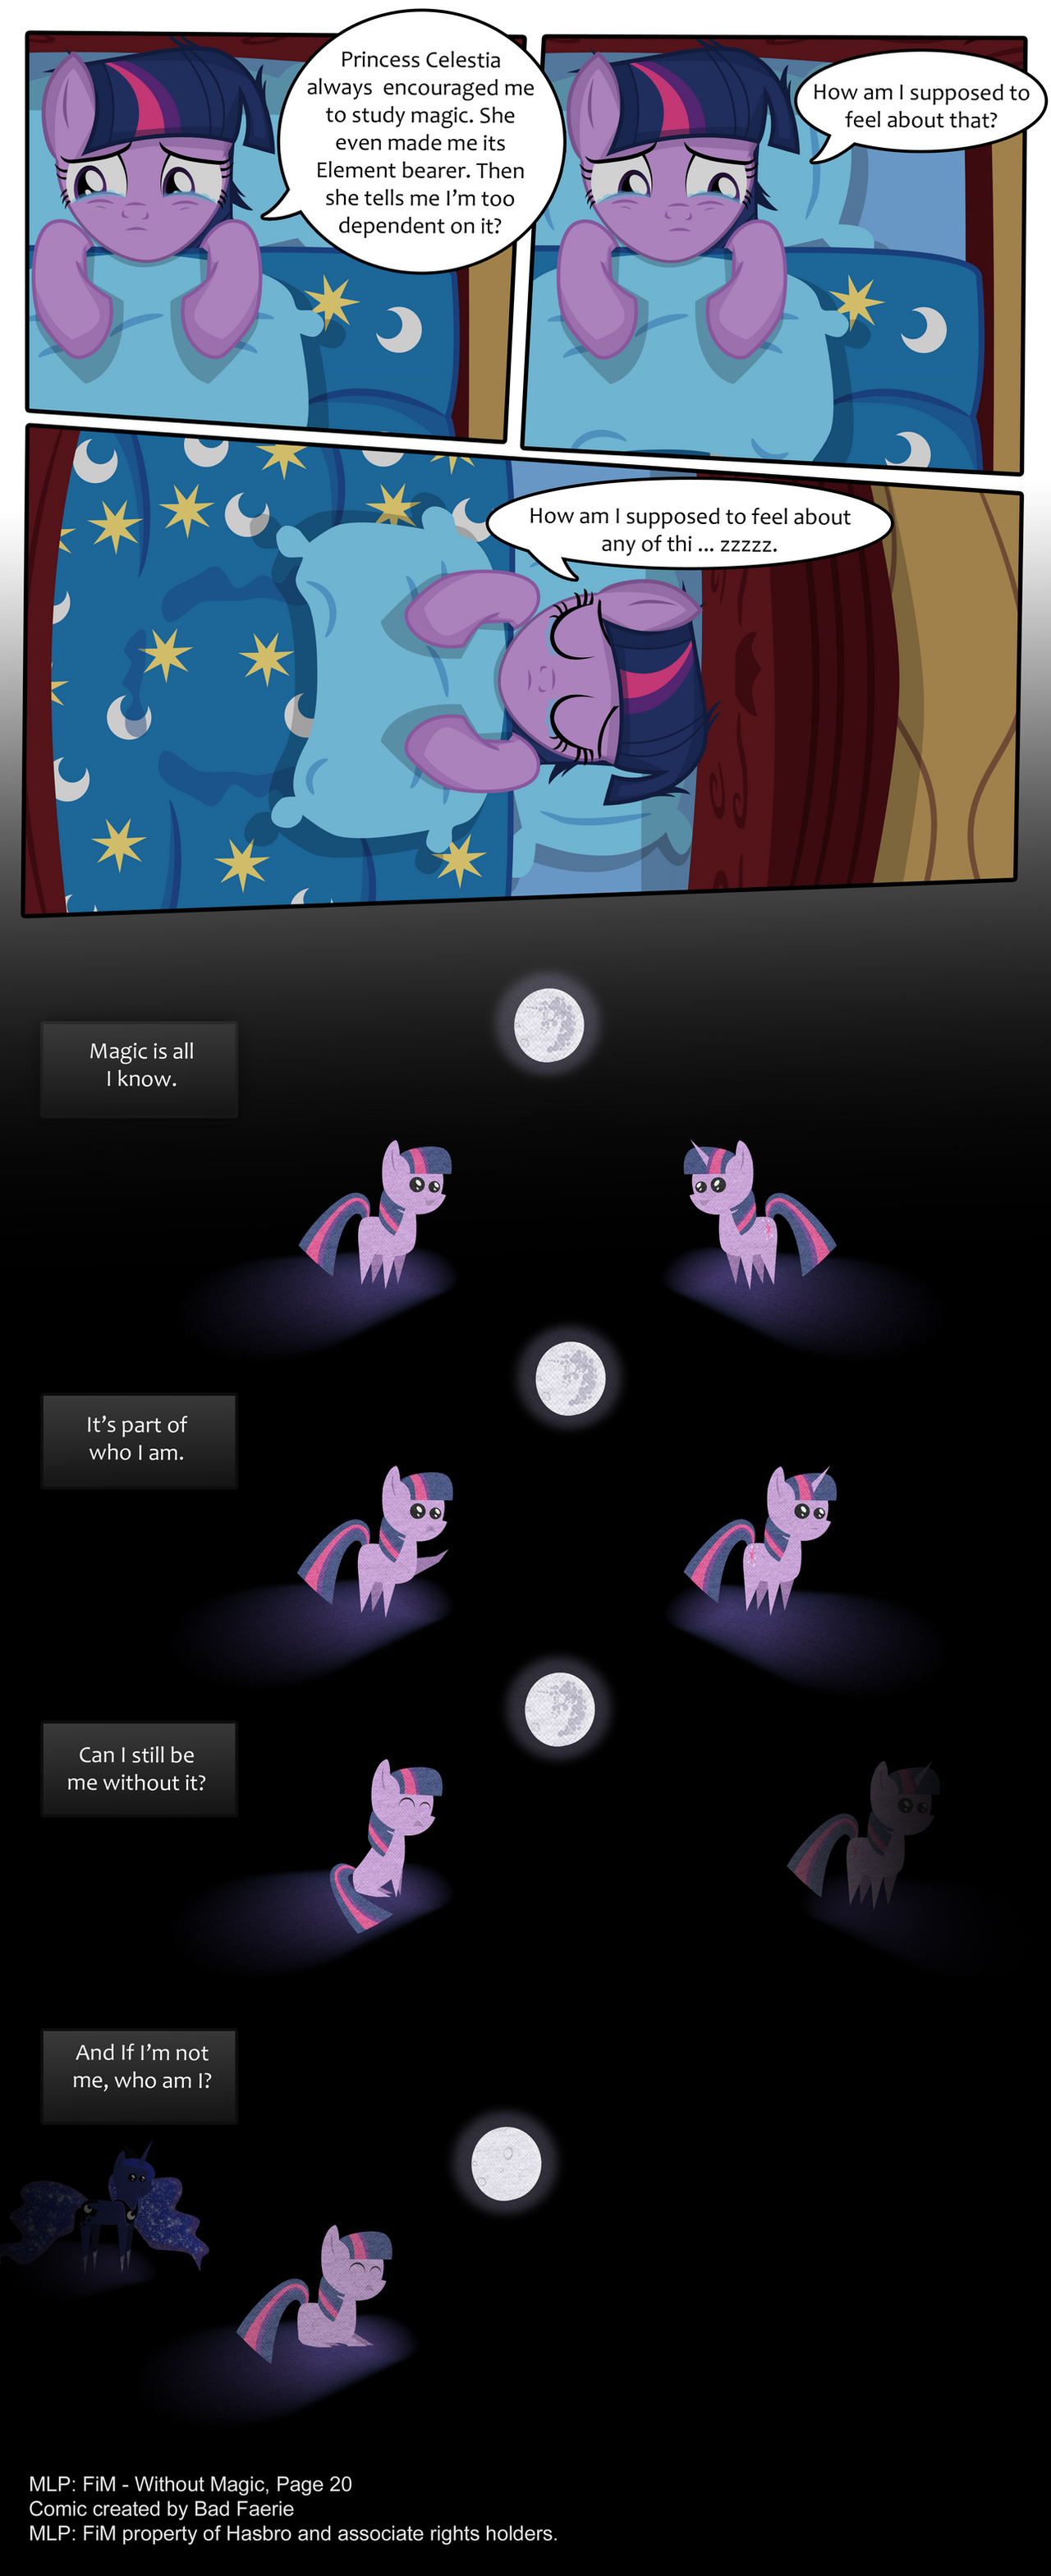 http://fc05.deviantart.net/fs70/i/2014/243/a/c/mlp__fim___without_magic_part_20_by_perfectblue97-d7xeq4g.png